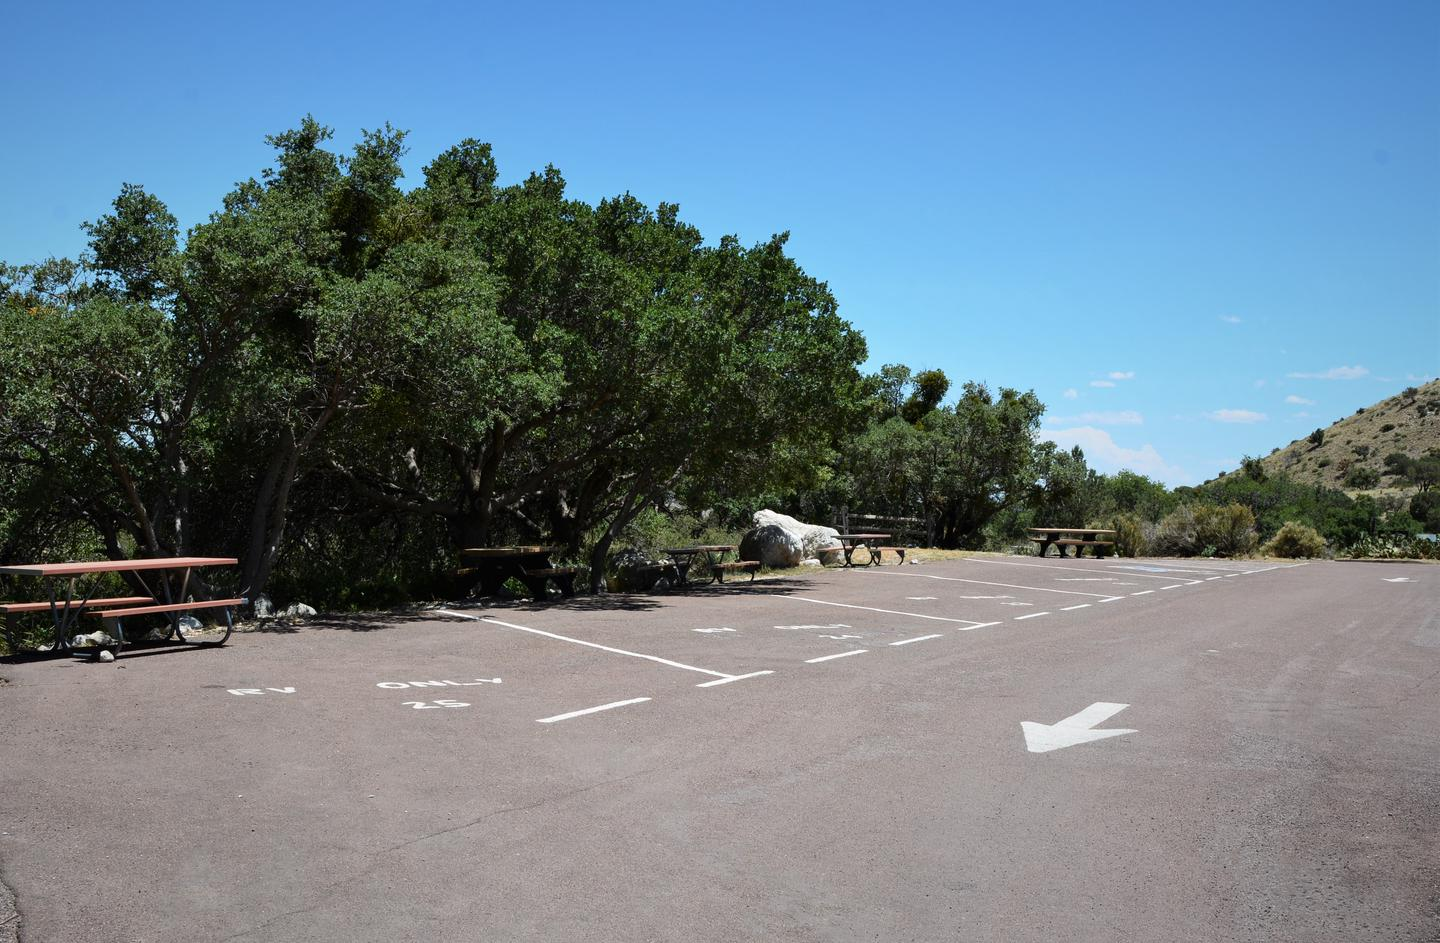 Row of 5 RV campsites paved parking with painted lines to delineate each site.  Sites are along a natural area with some trees but they offer little shade to each site.A row of RV campsites.  Site 22 is the second spot from the right end of this photo.